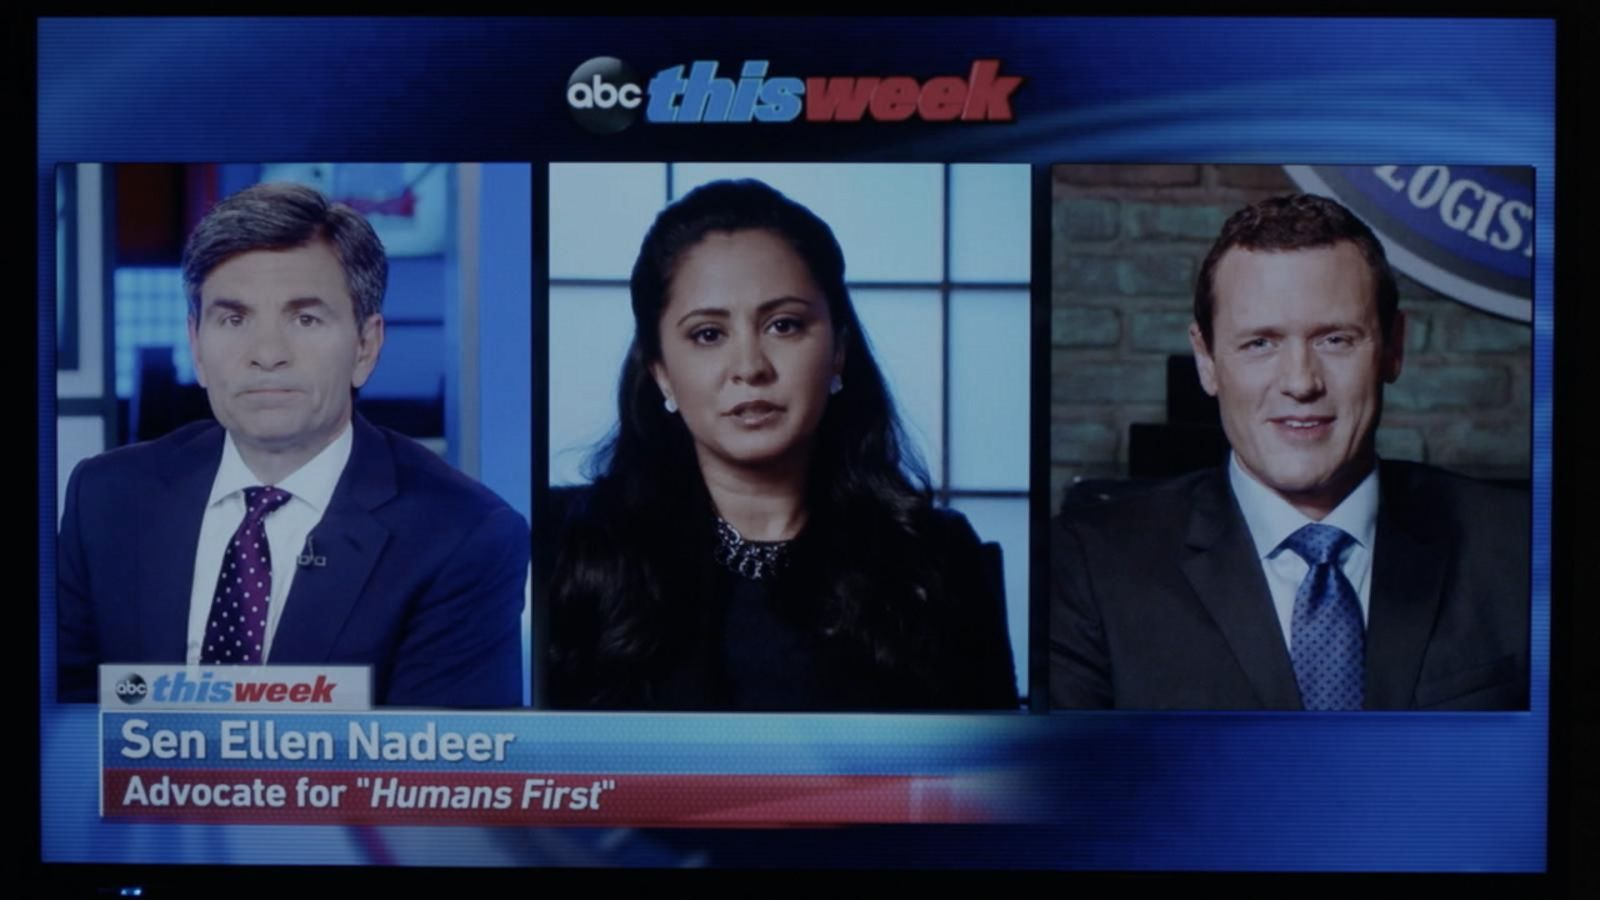 VIDEO: George Stephanopoulos on Marvel's 'Agents of S.H.I.E.L.D.'